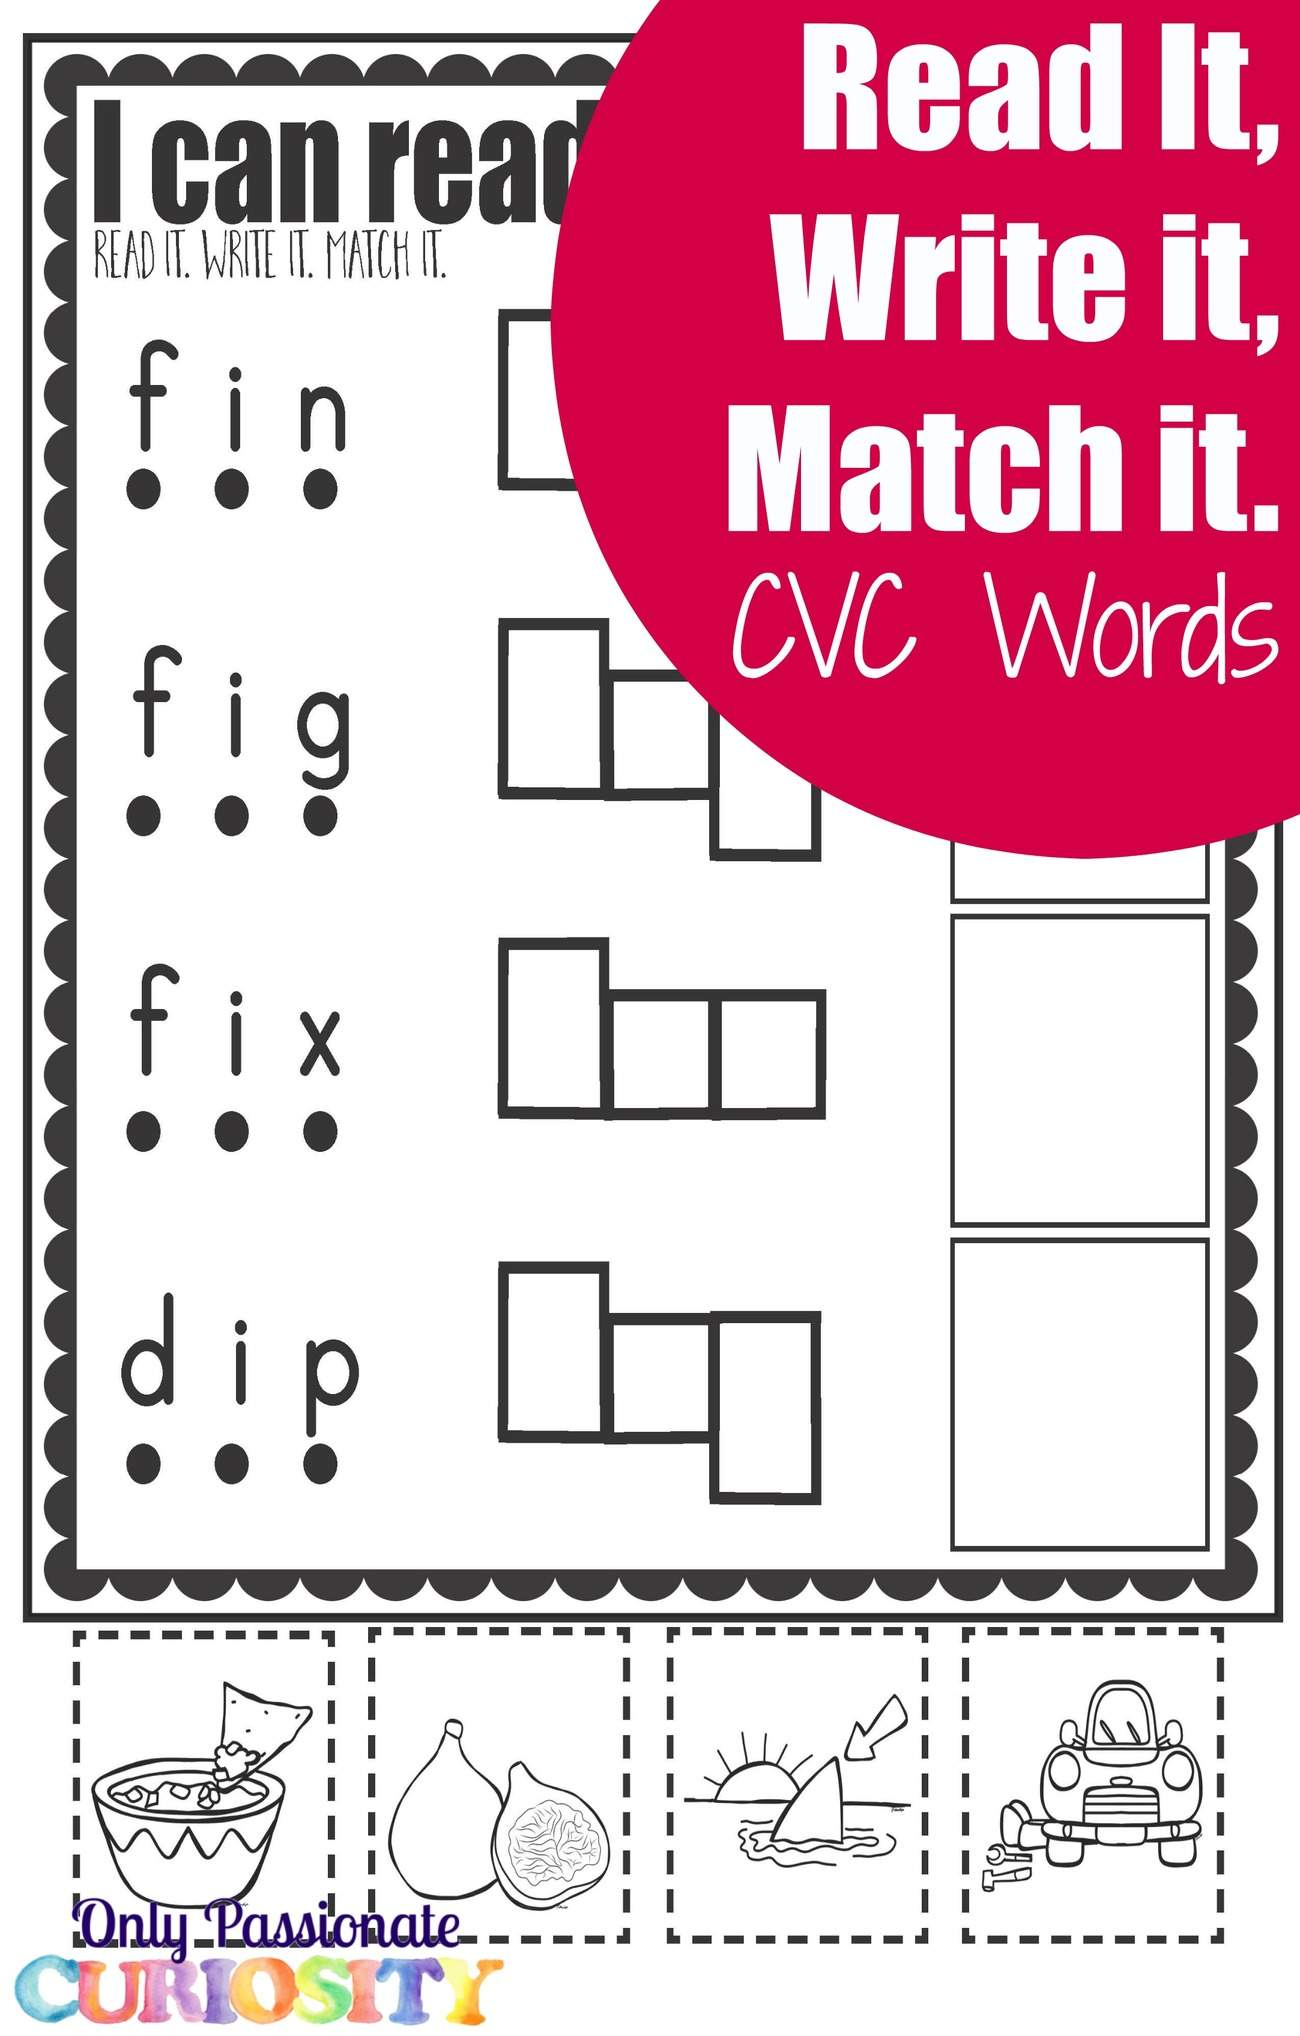 Cvc Worksheets Cut And Paste Letter I Only Passionate Curiosity